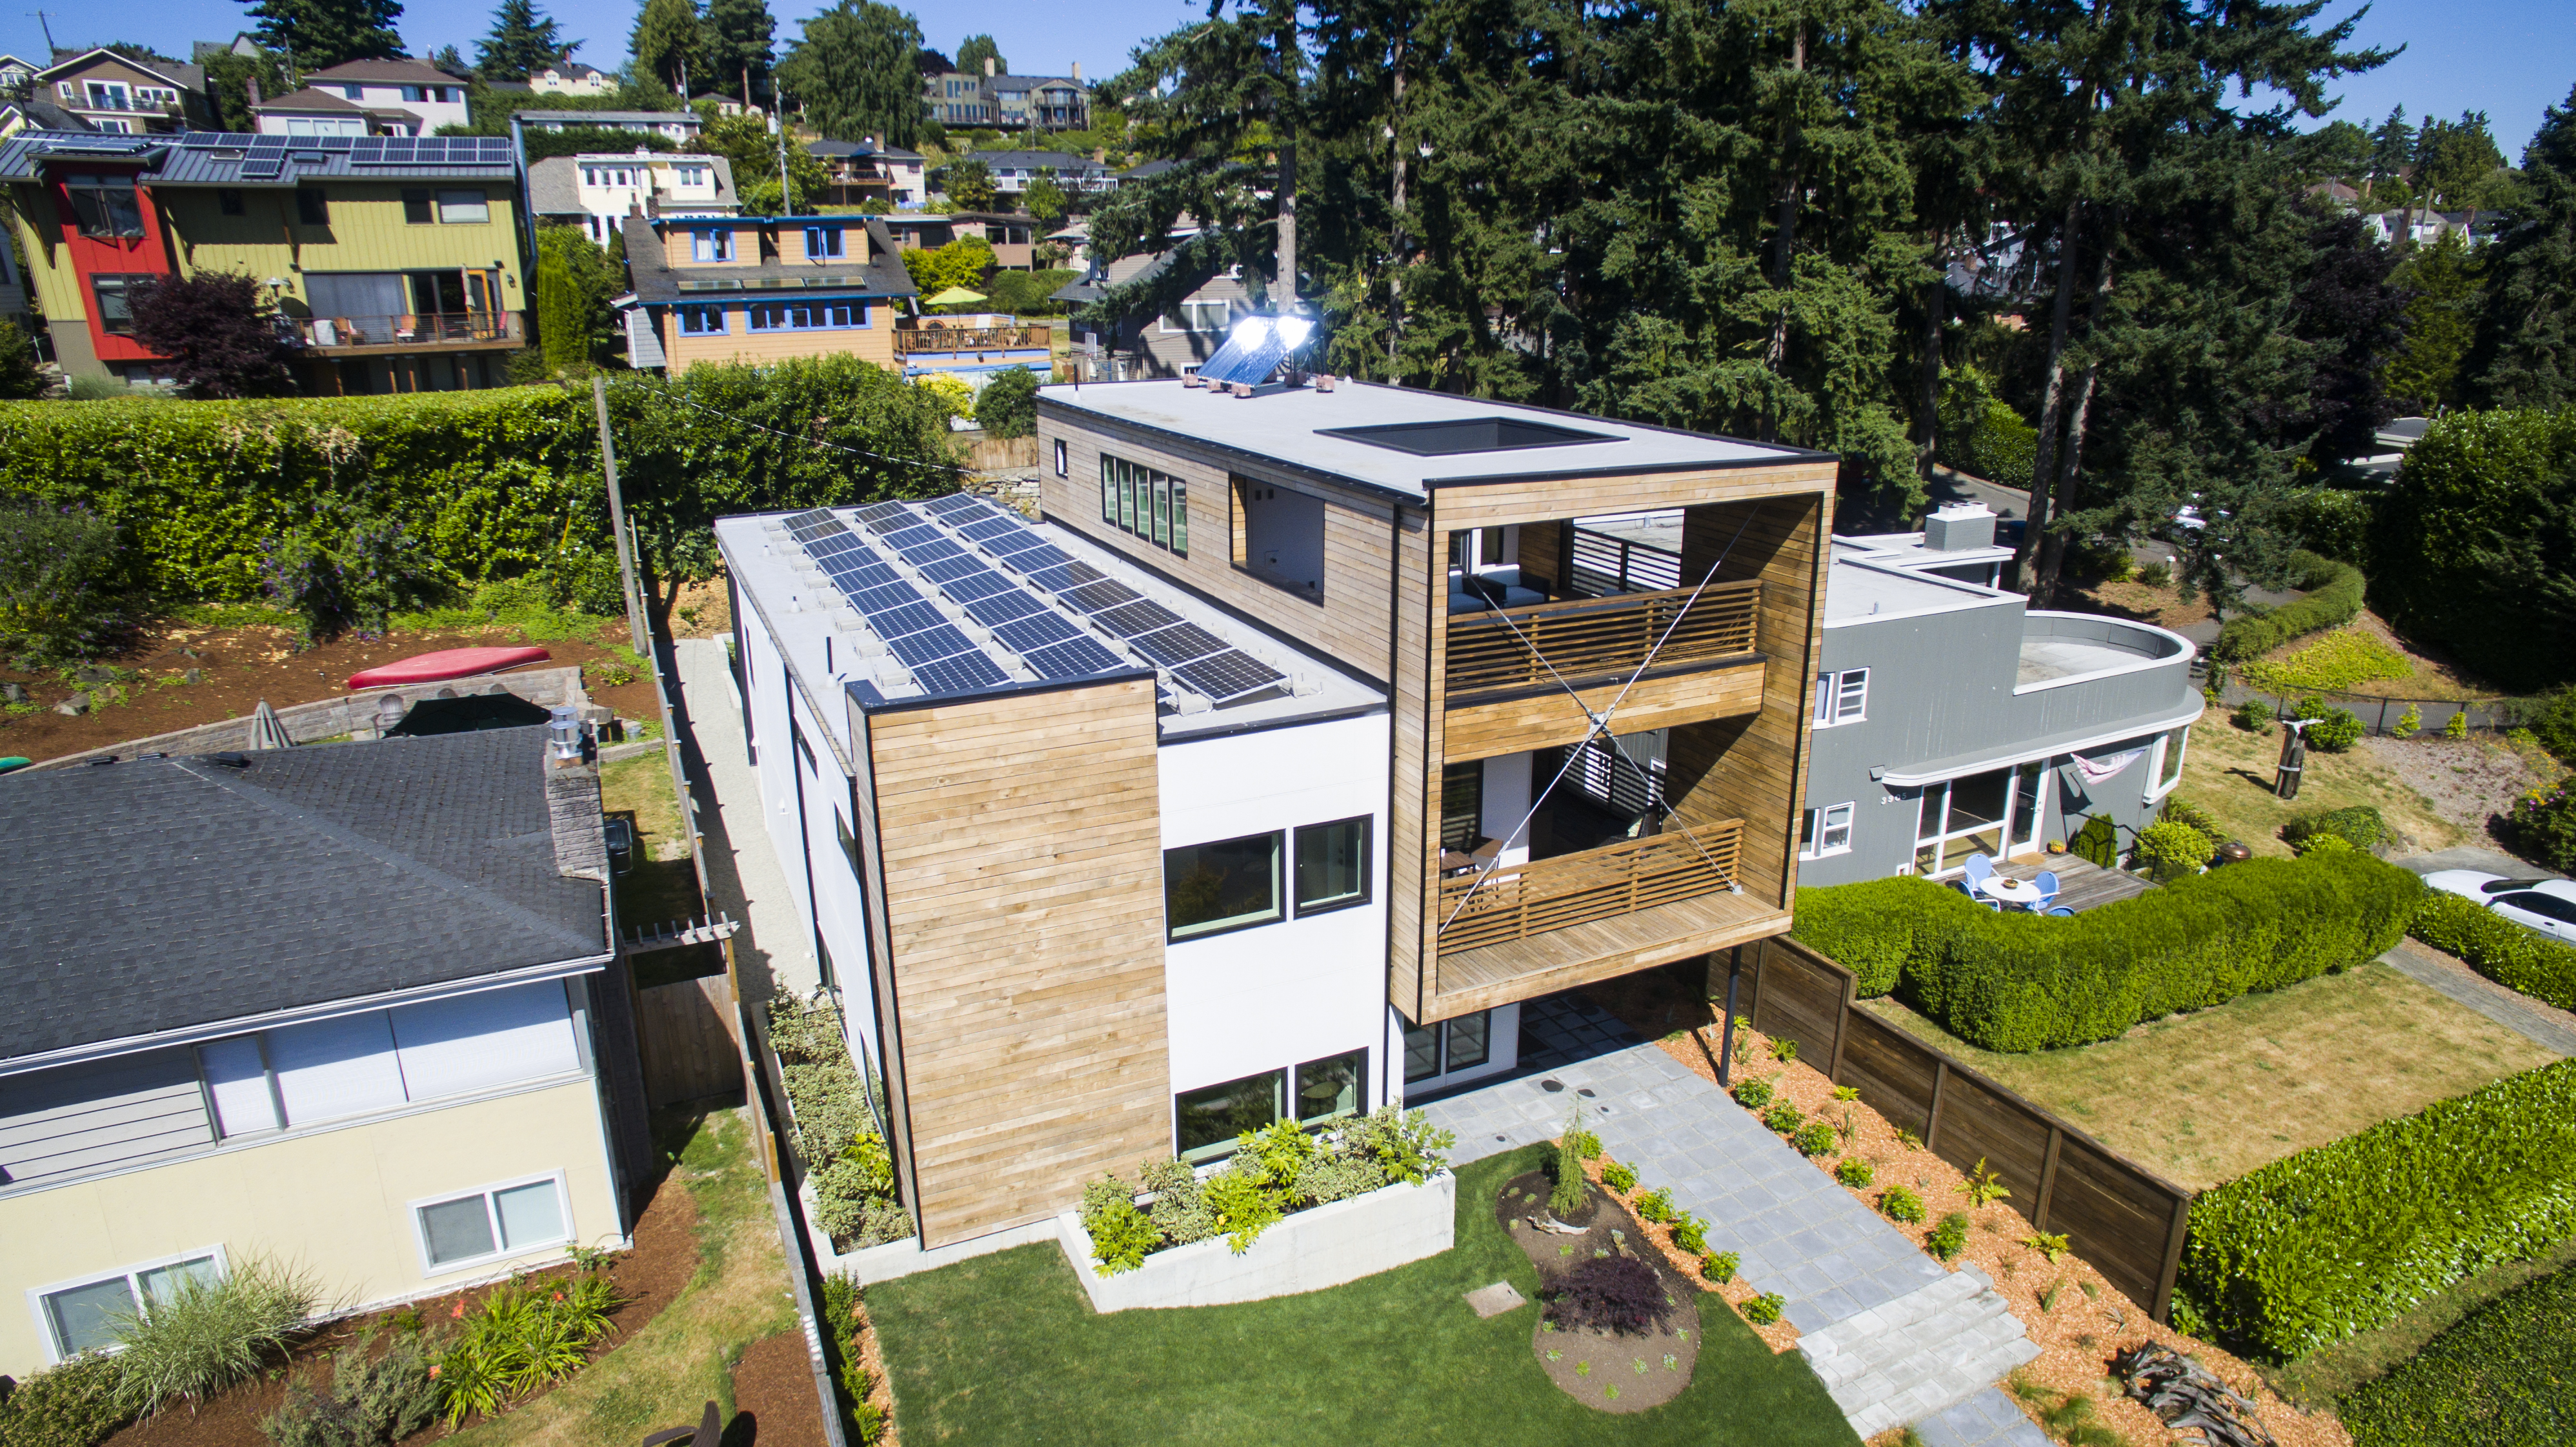 Dwell Development in Seattle won the top Housing Innovation Award in the Spec home category for a 3-story, 3700 square foot net zero energy home on Lake Washington. The company builds one-of-a-kind net-zero homes designed and detailed to compete with code-built homes.